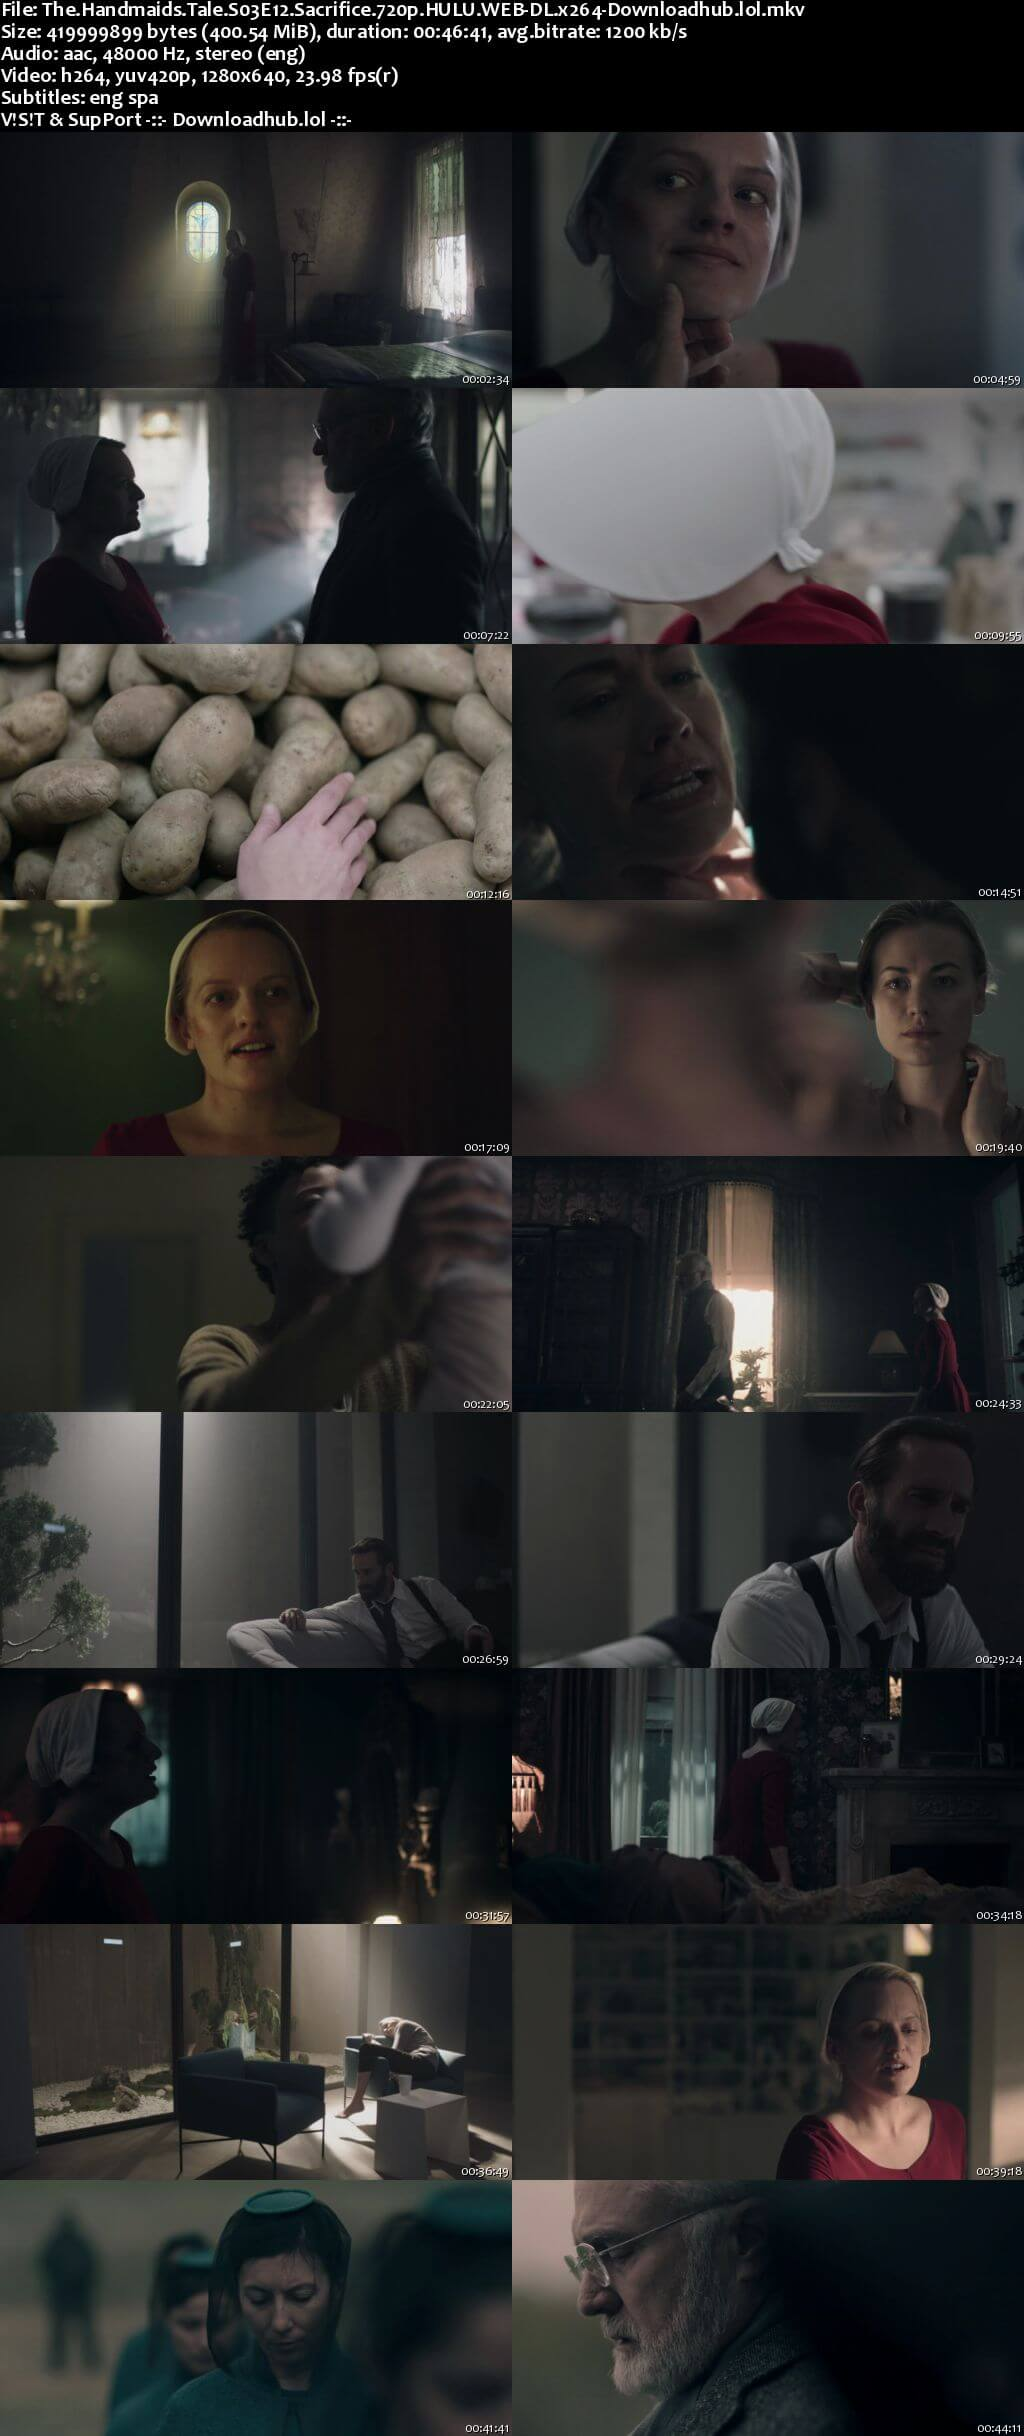 The Handmaids Tale S03E12 400MB WEB-DL 720p ESubs